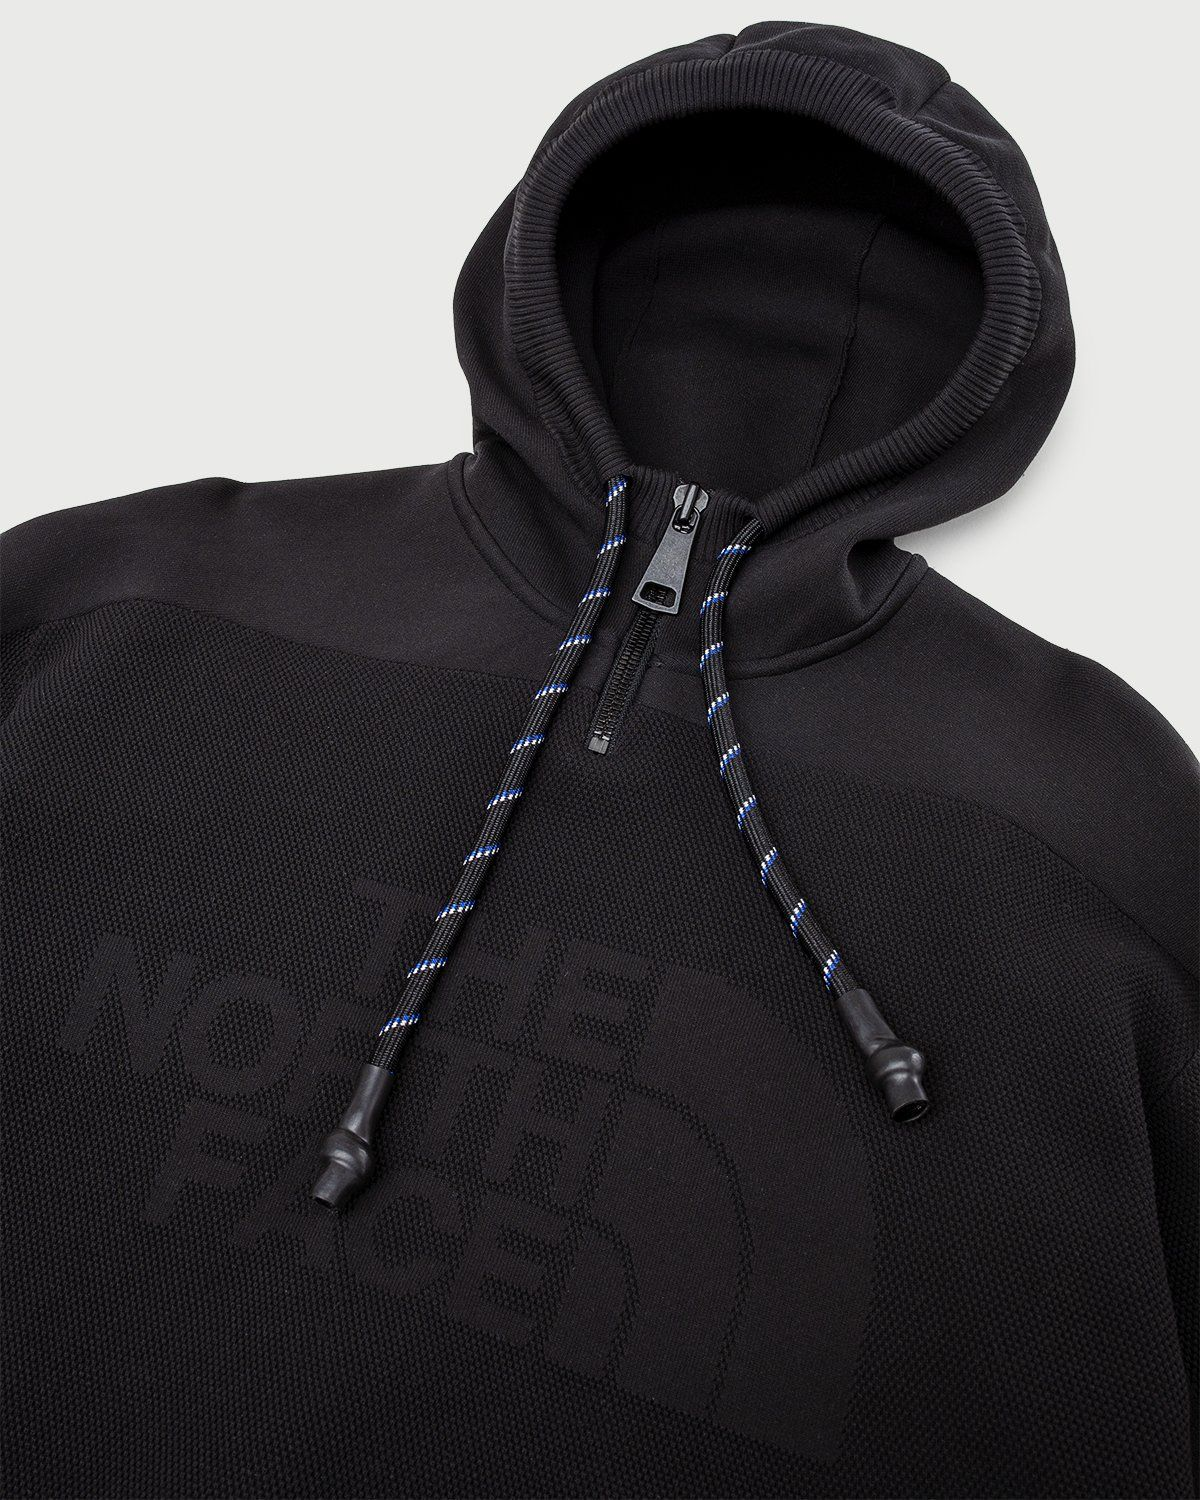 The North Face Black Series - Engineered Knit Hoodie Black - Image 4